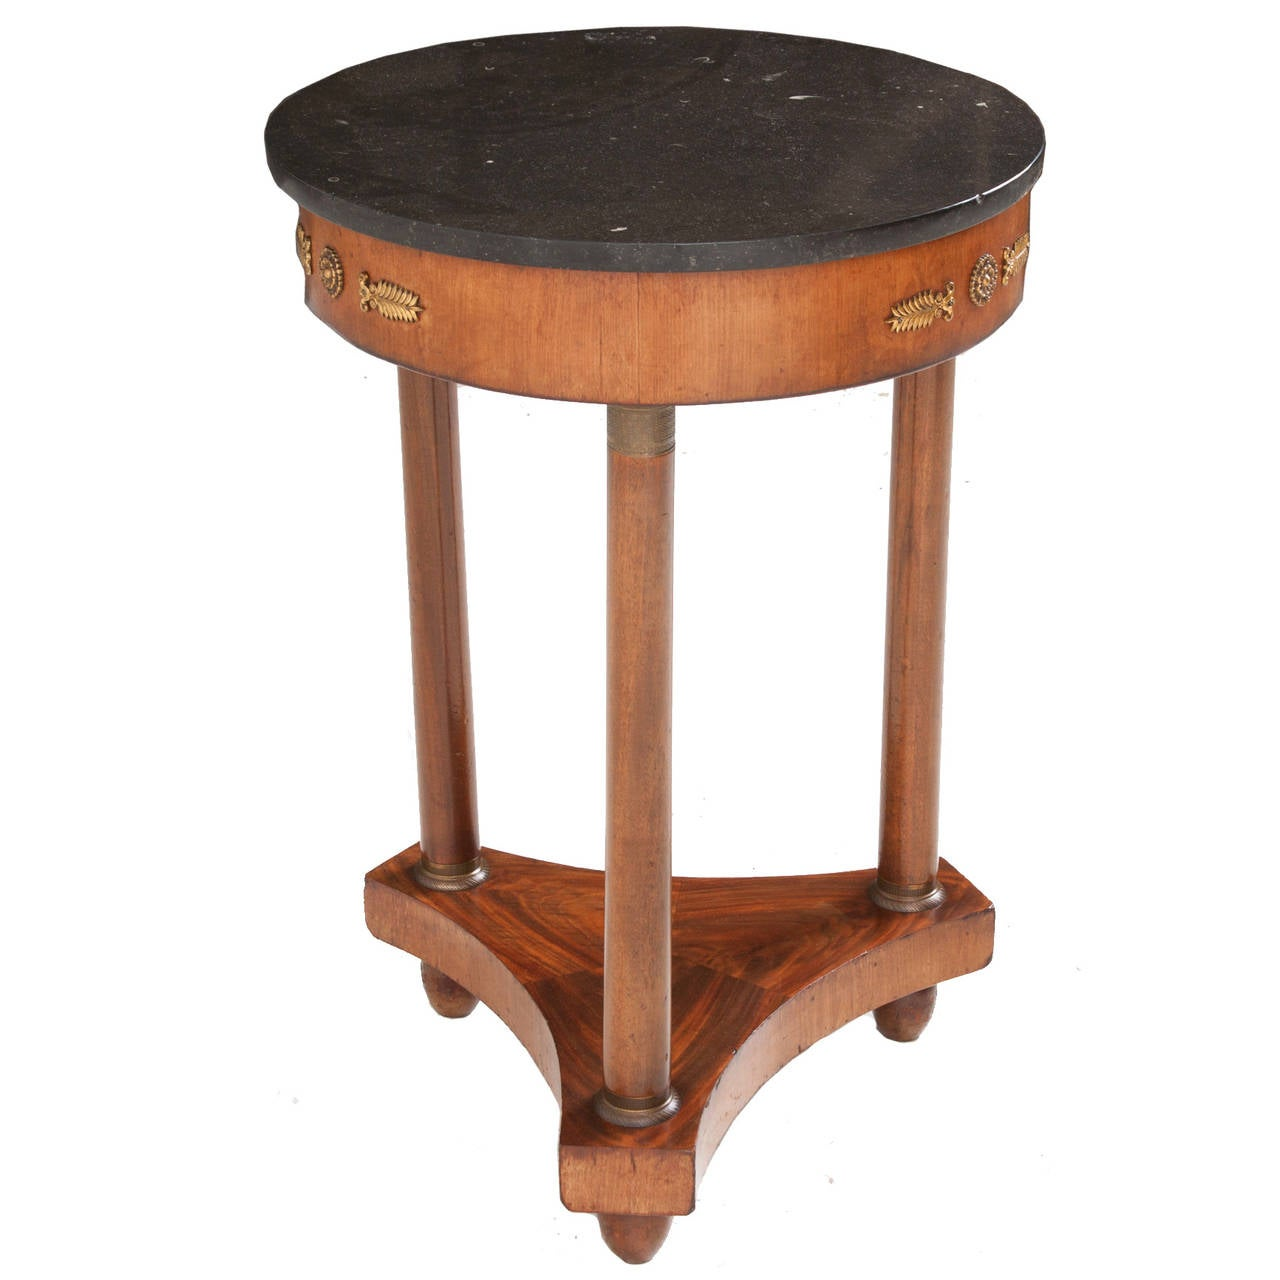 french 19th century petite empire gueridon table for sale at 1stdibs. Black Bedroom Furniture Sets. Home Design Ideas